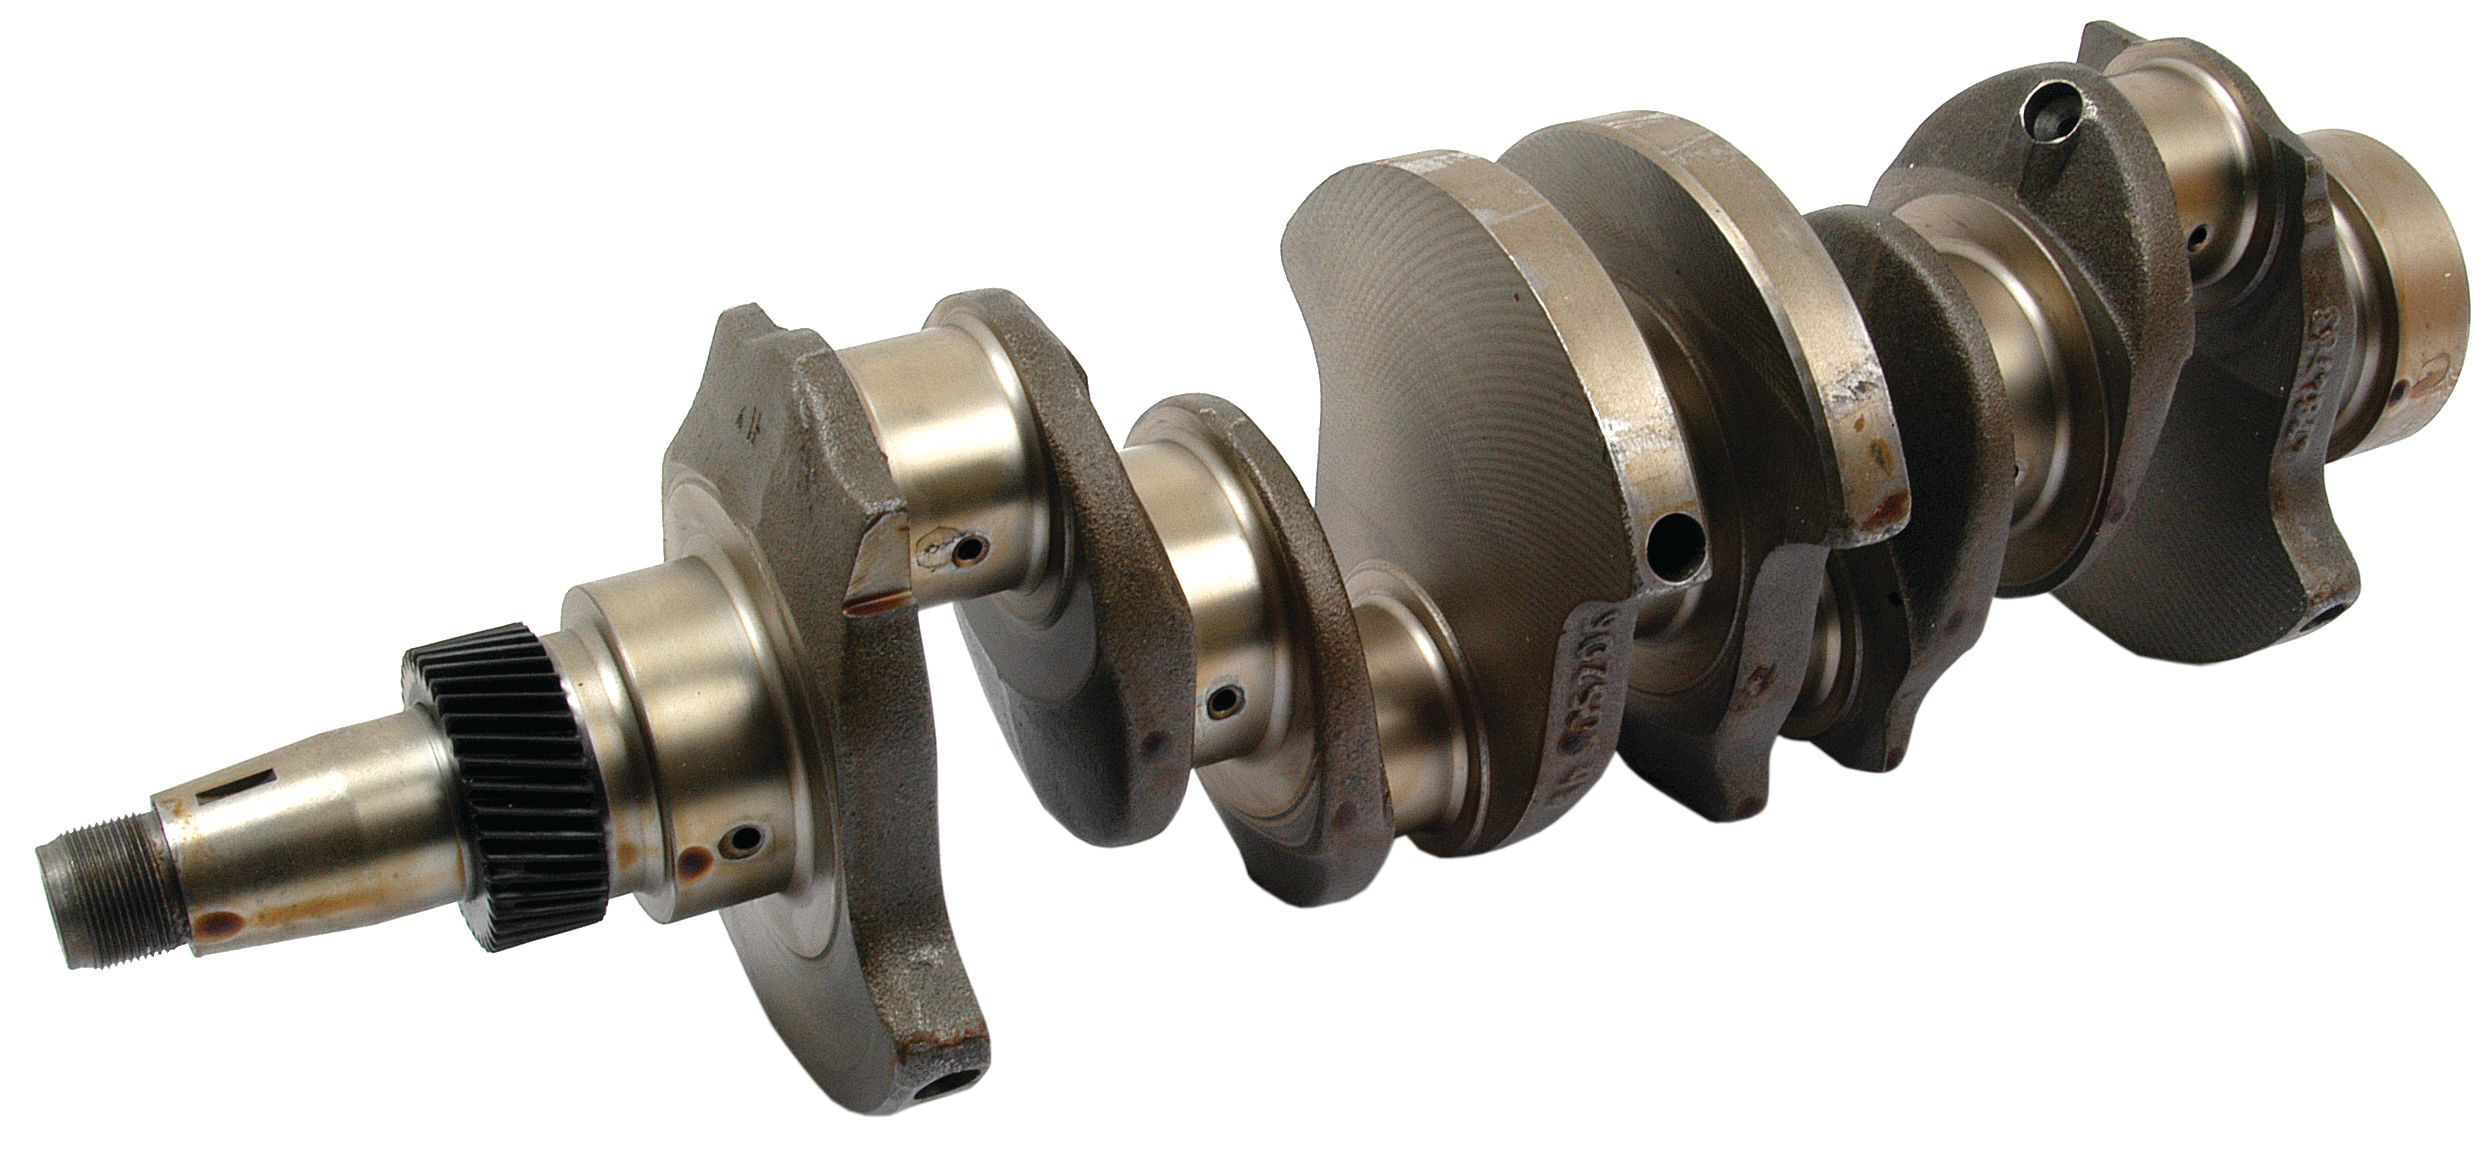 WHITE/OLIVER CRANKSHAFT-FIAT 4 CYL 6 HOLE